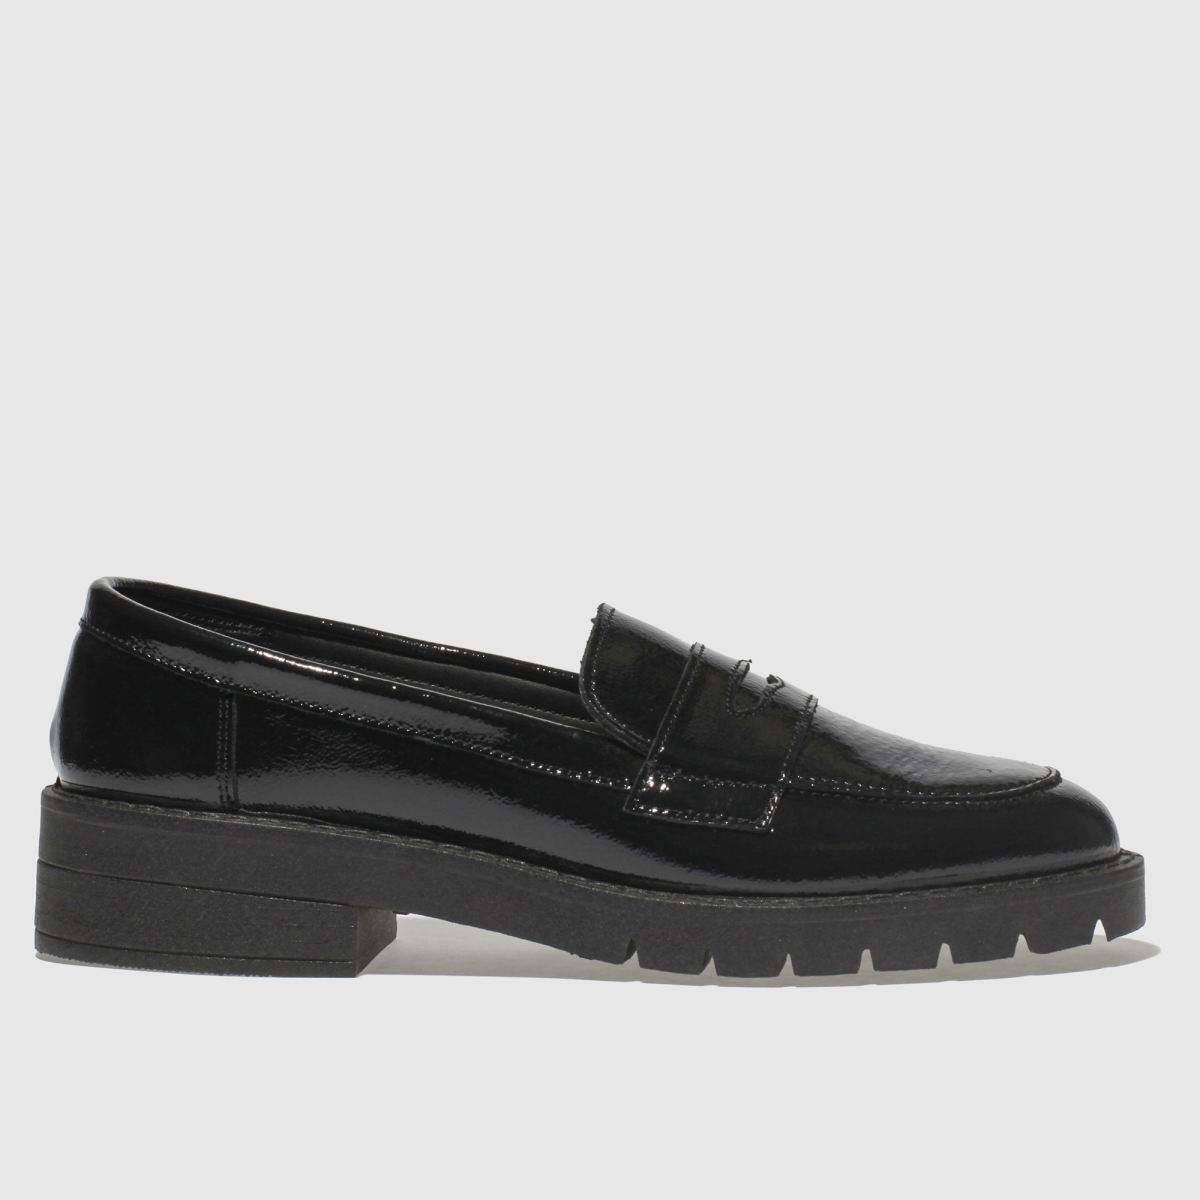 Schuh Black Chilled Flat Shoes